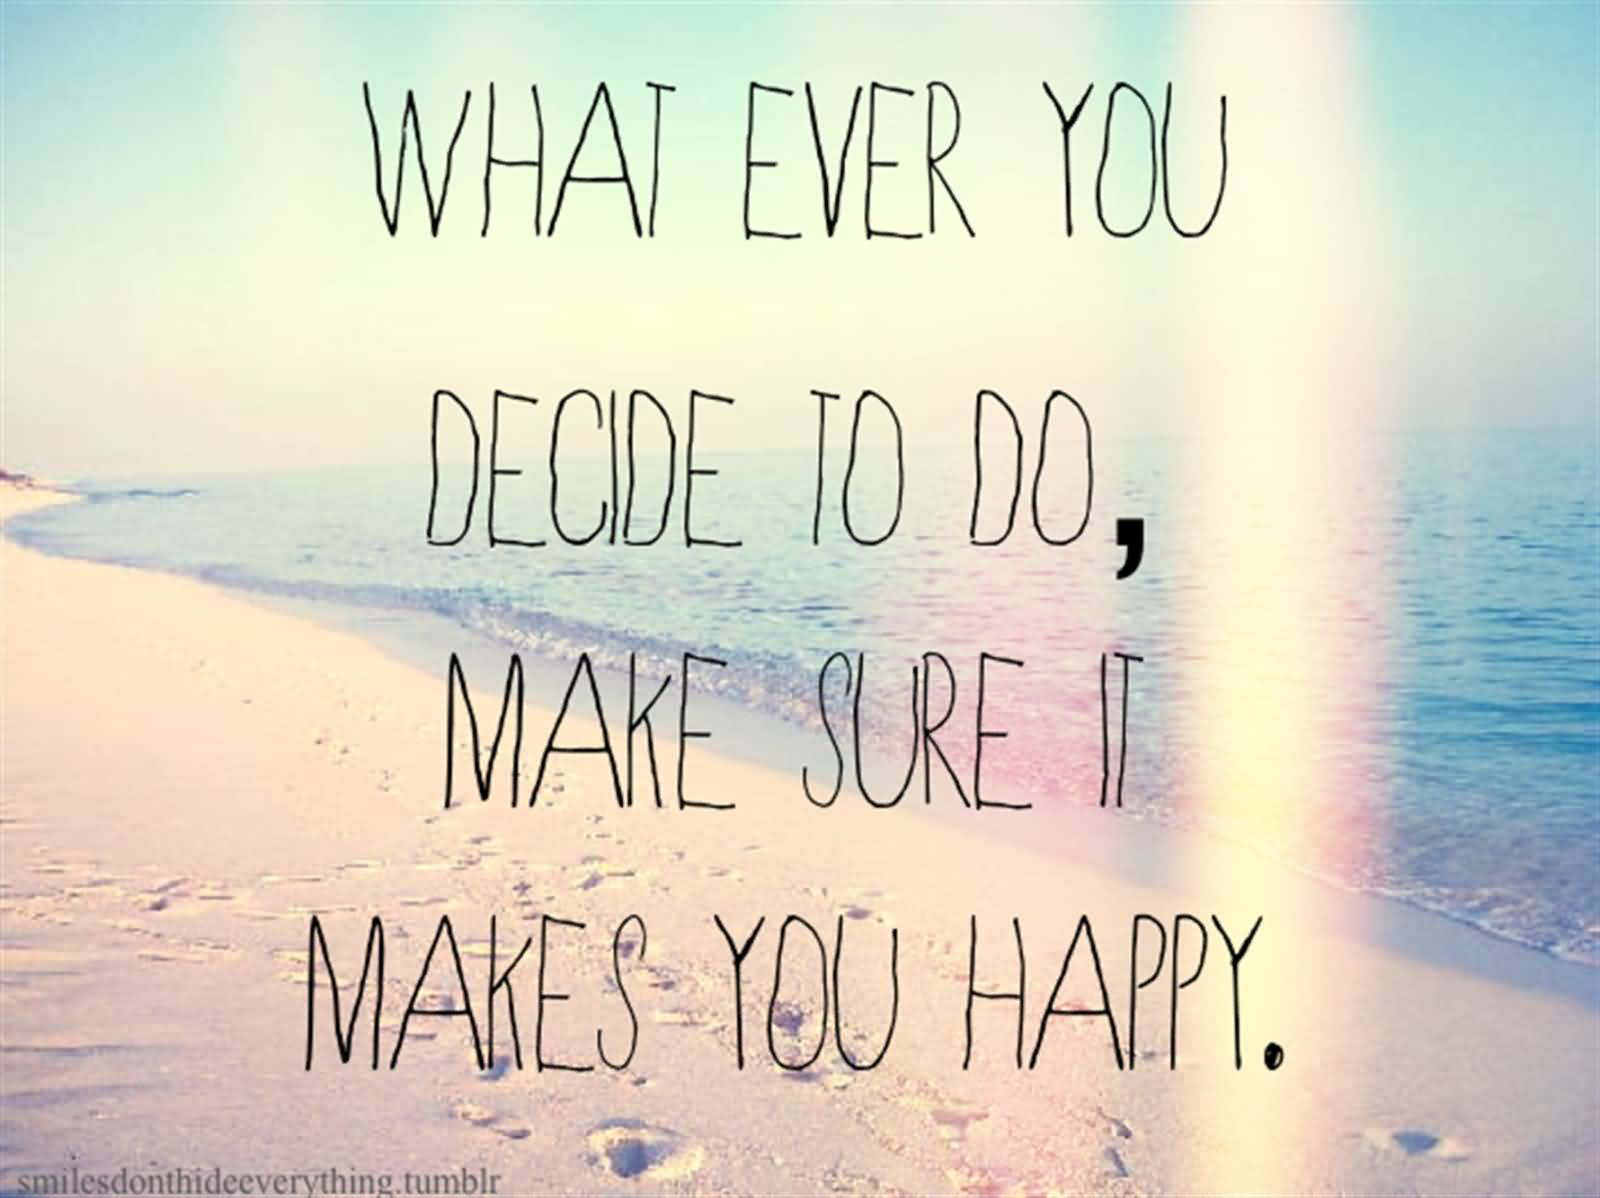 Quotes To Make You Happy 72 Top Happiness Quotes And Sayings